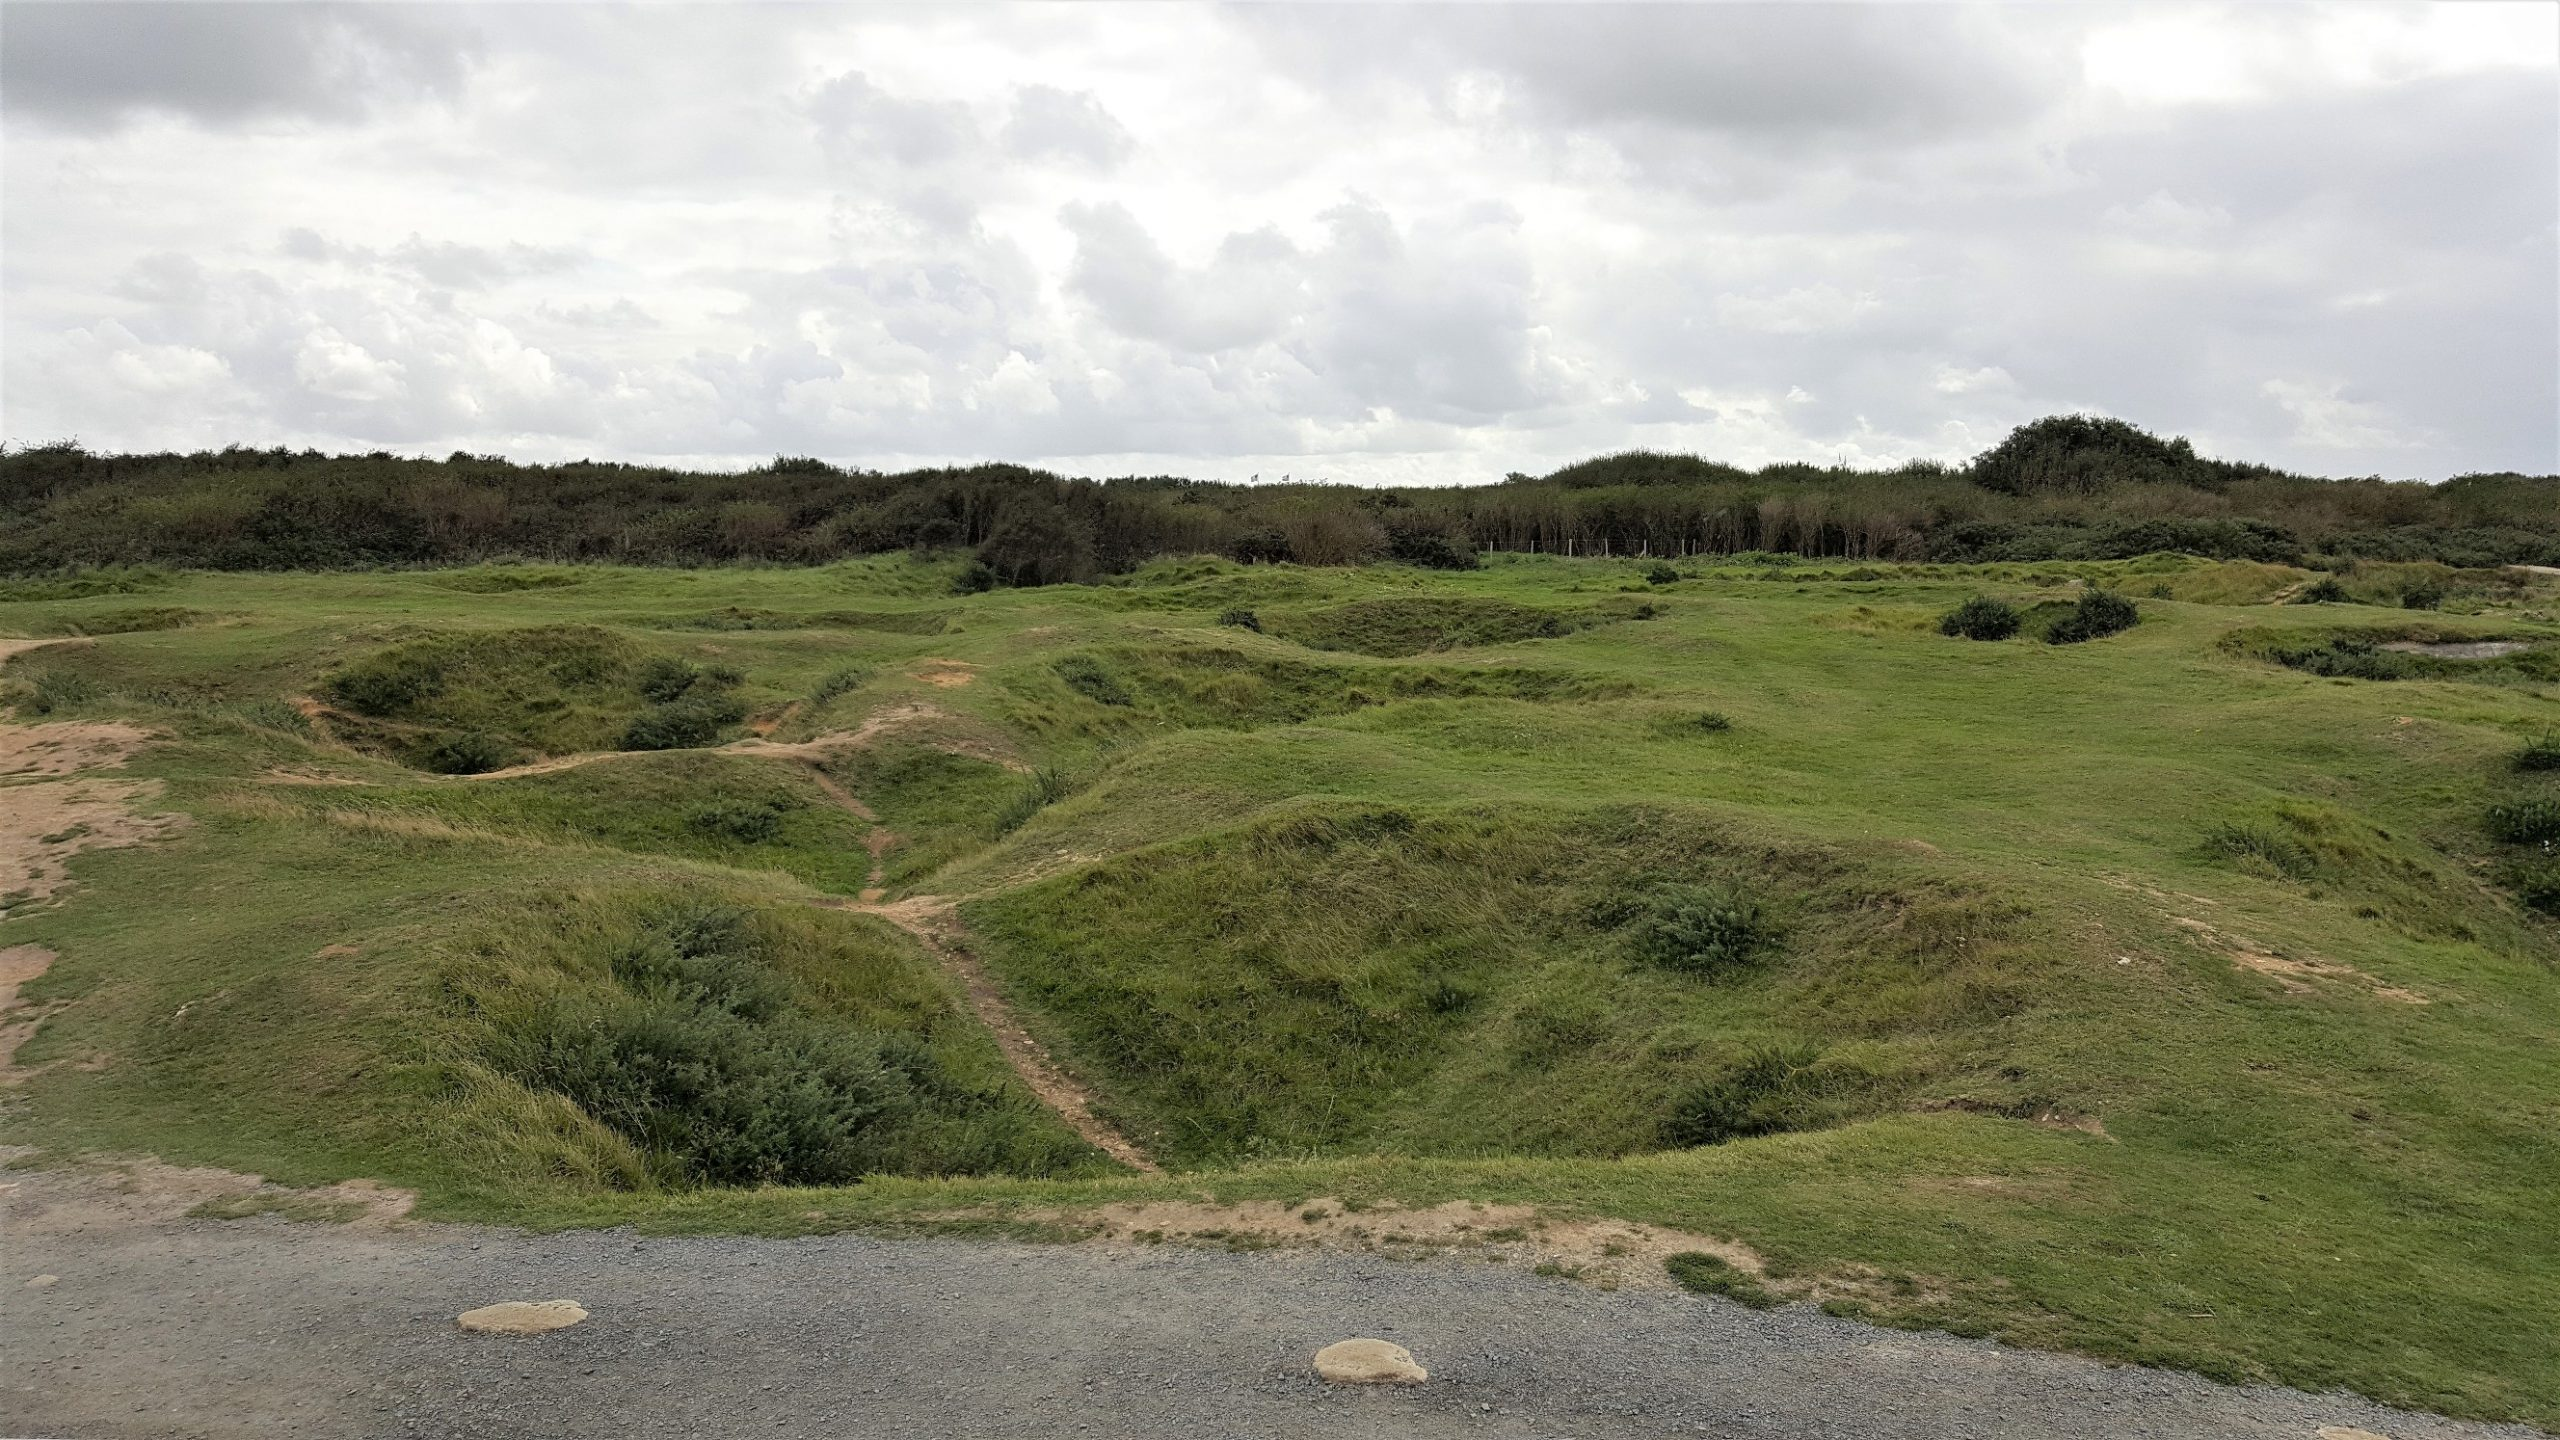 View over Pointe du Hoc showing cratering (Photo: Sarah Sundin, September 2017)